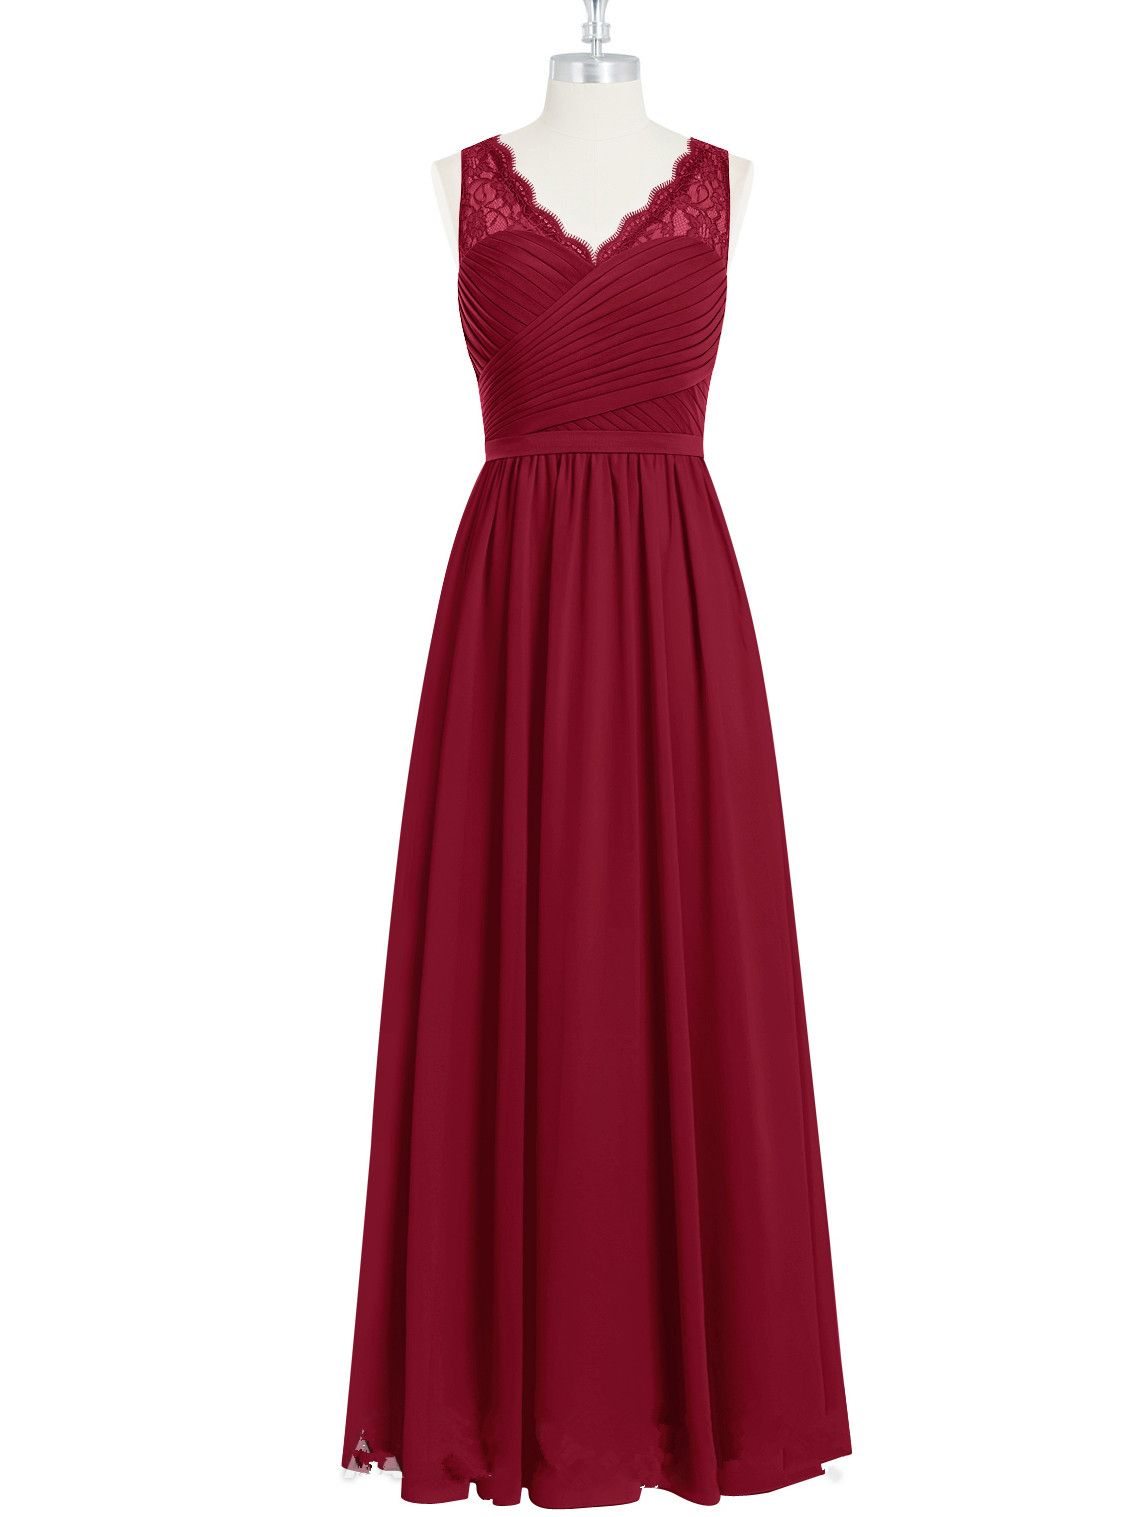 Burgundy long chiffon bridesmaid dress party dress projects